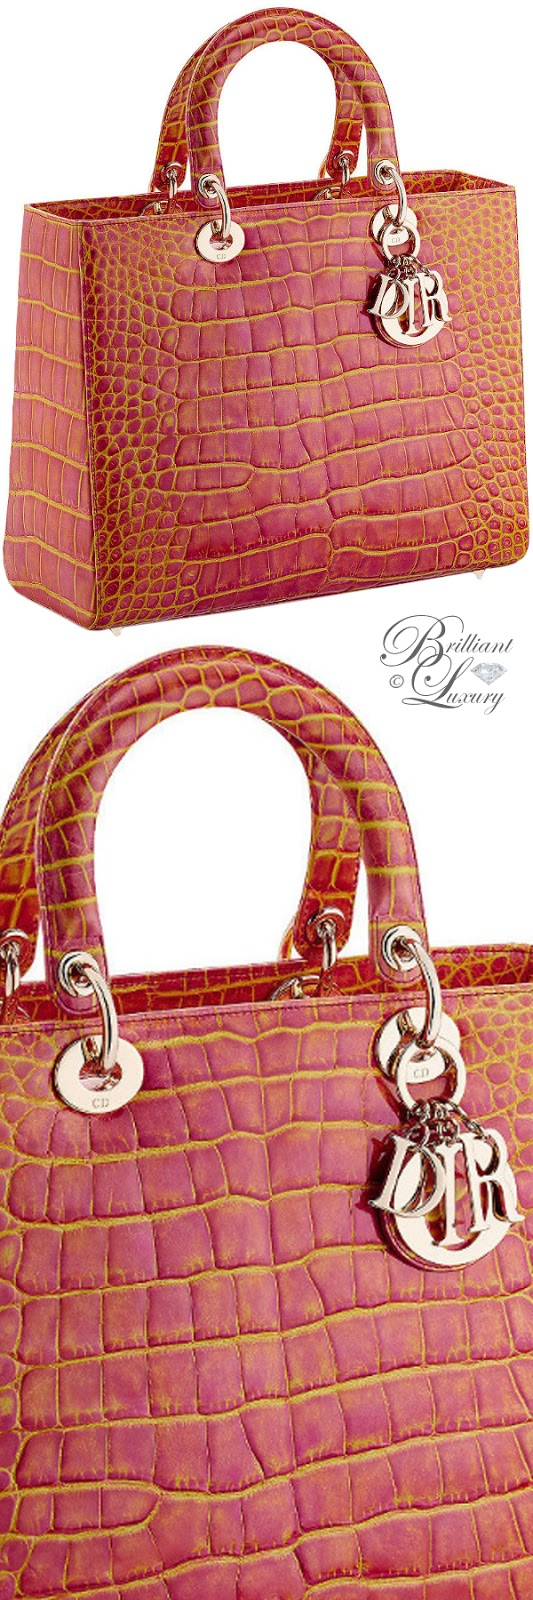 Brilliant Luxury ♦ Large Lady Dior bag in pink and yellow patinated alligator